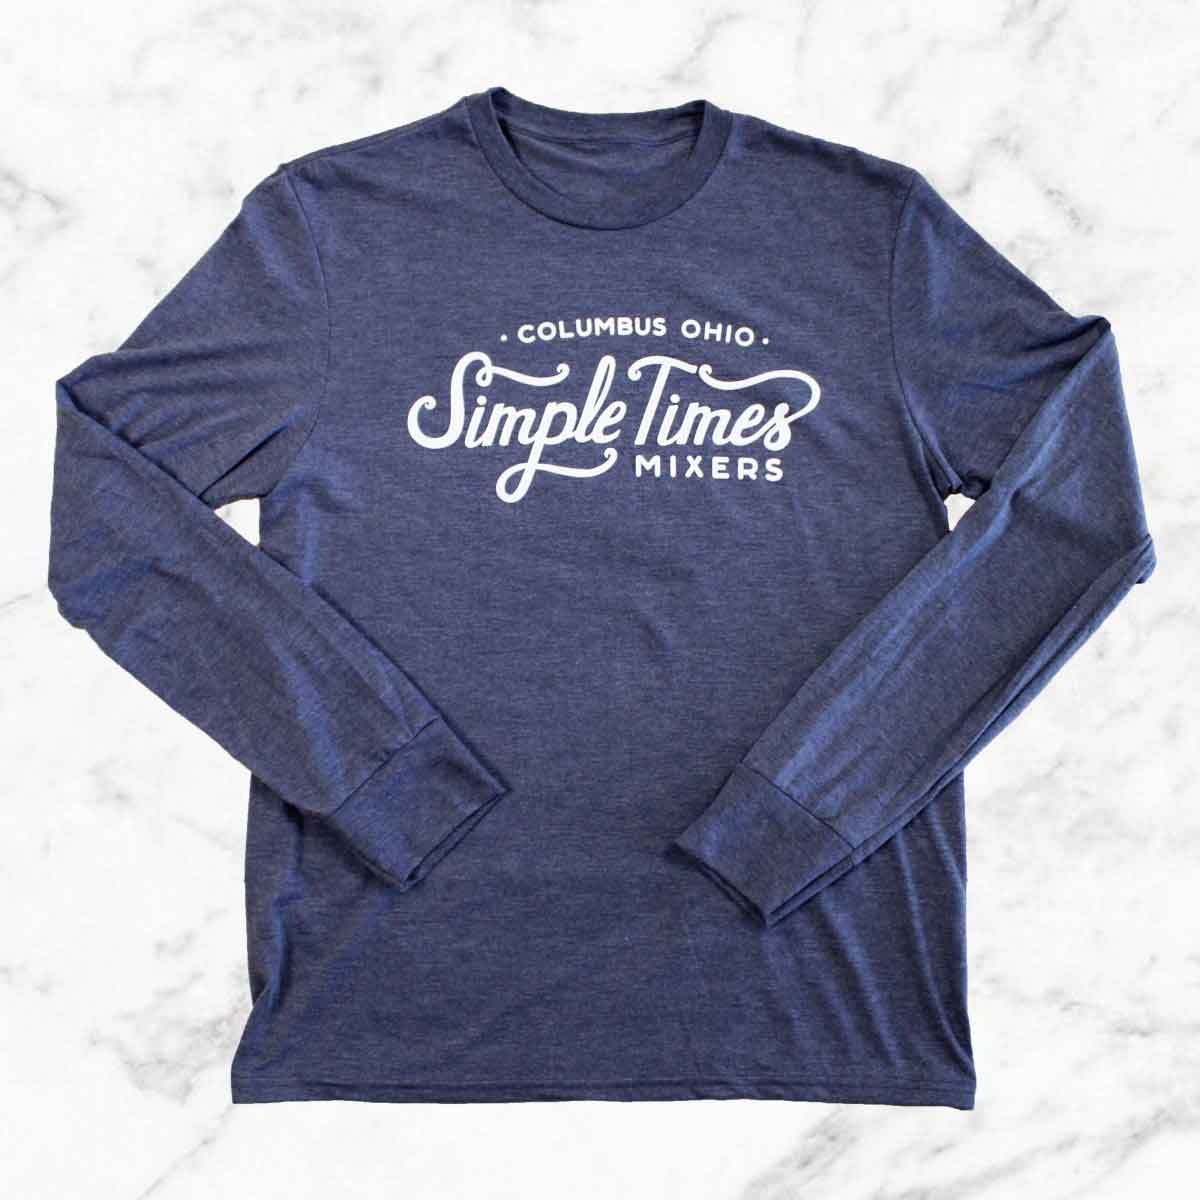 Cocktail Mixers - Alcohol Mixers - Simple Times Mixers - STM Long Sleeve T-Shirt